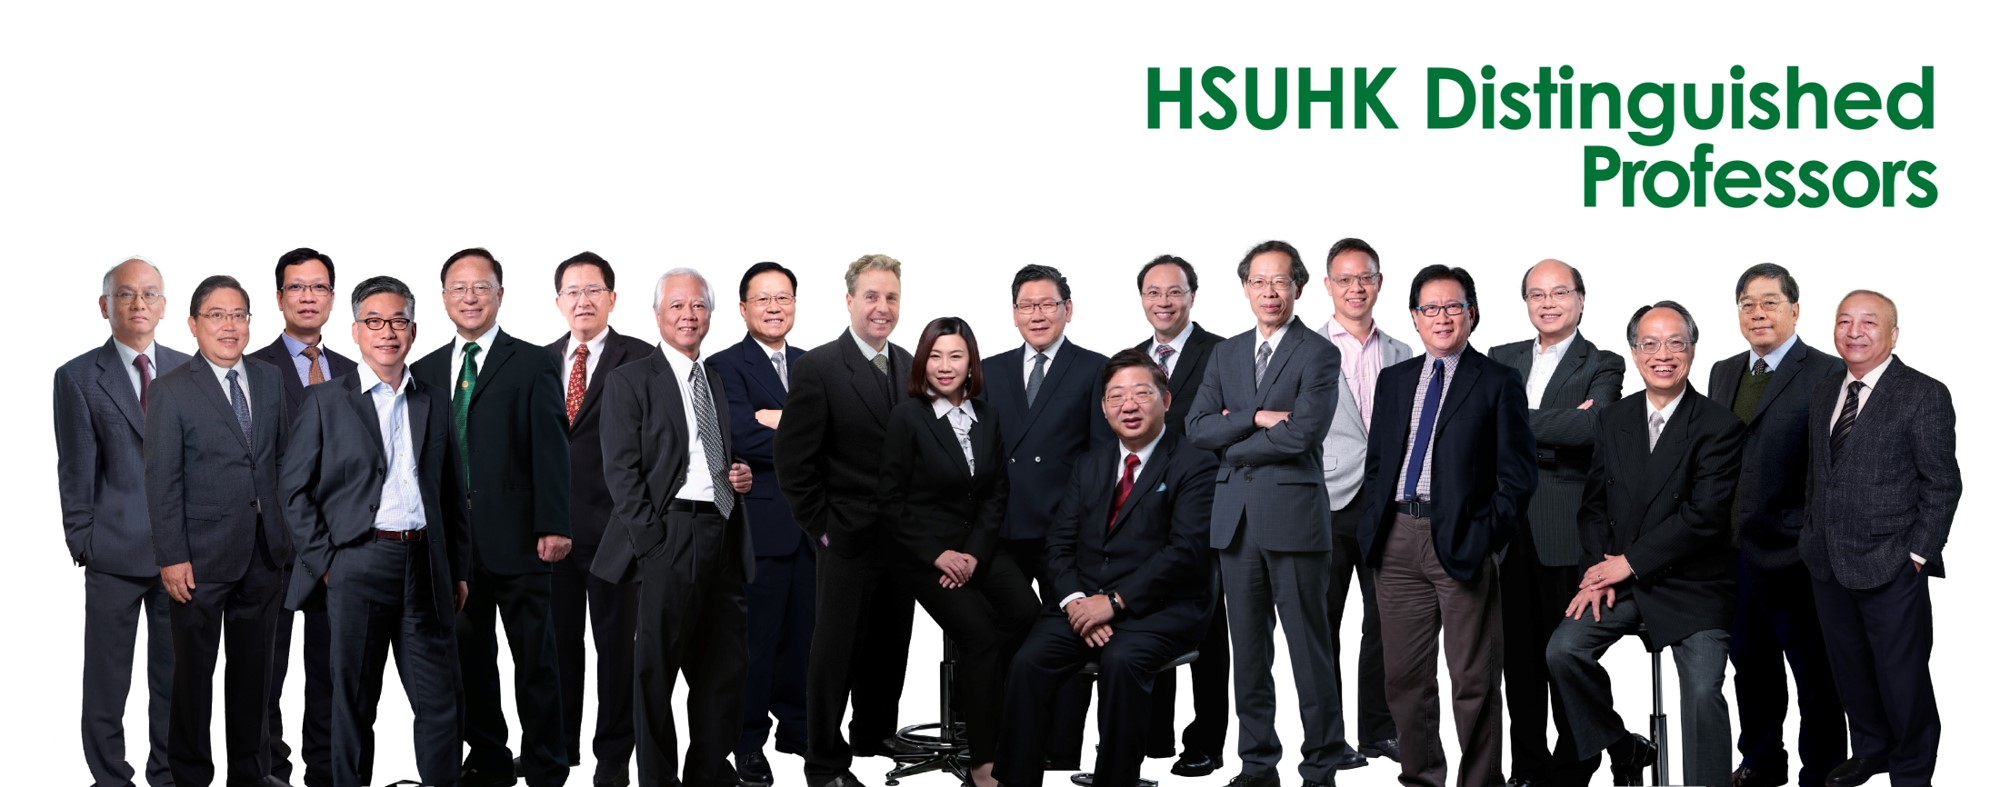 2020 HSUHK Distinguished Professors